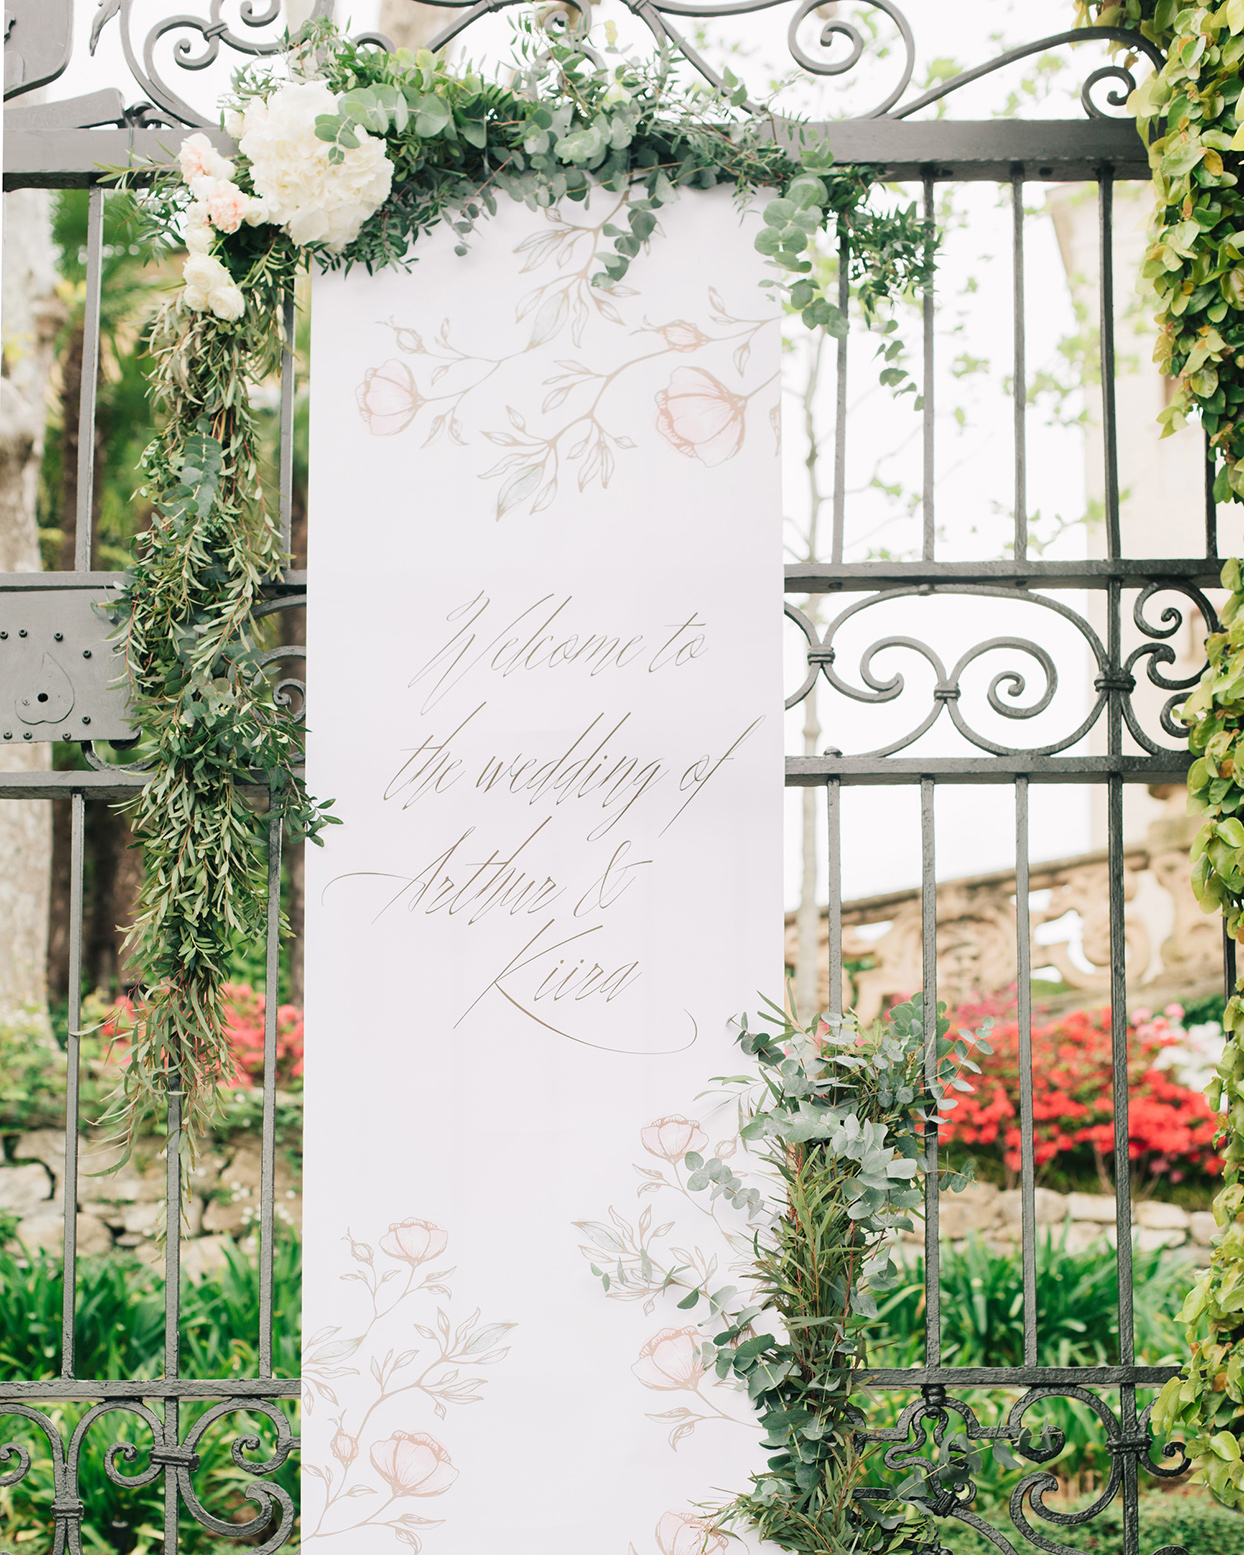 kiira arthur wedding welcome sign